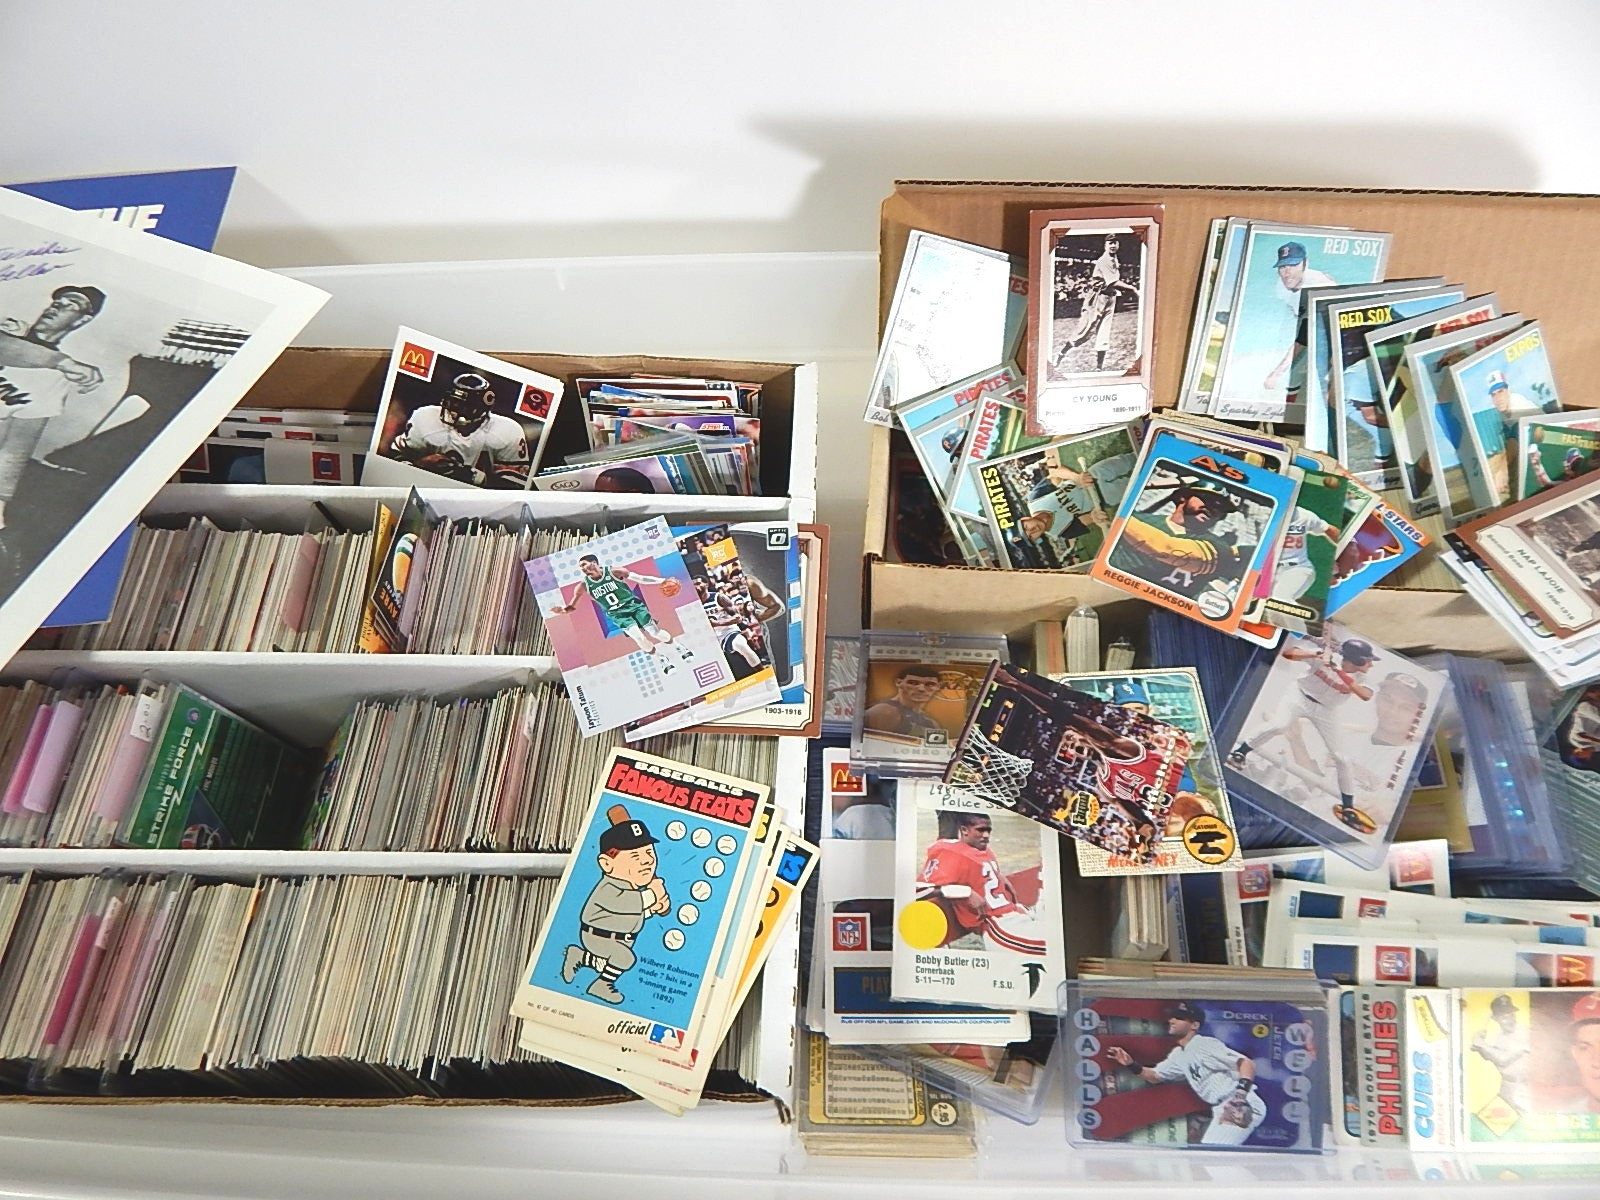 Large Tub of Sports Cards with Football, Baseball, Basketball - 2500 Ct.